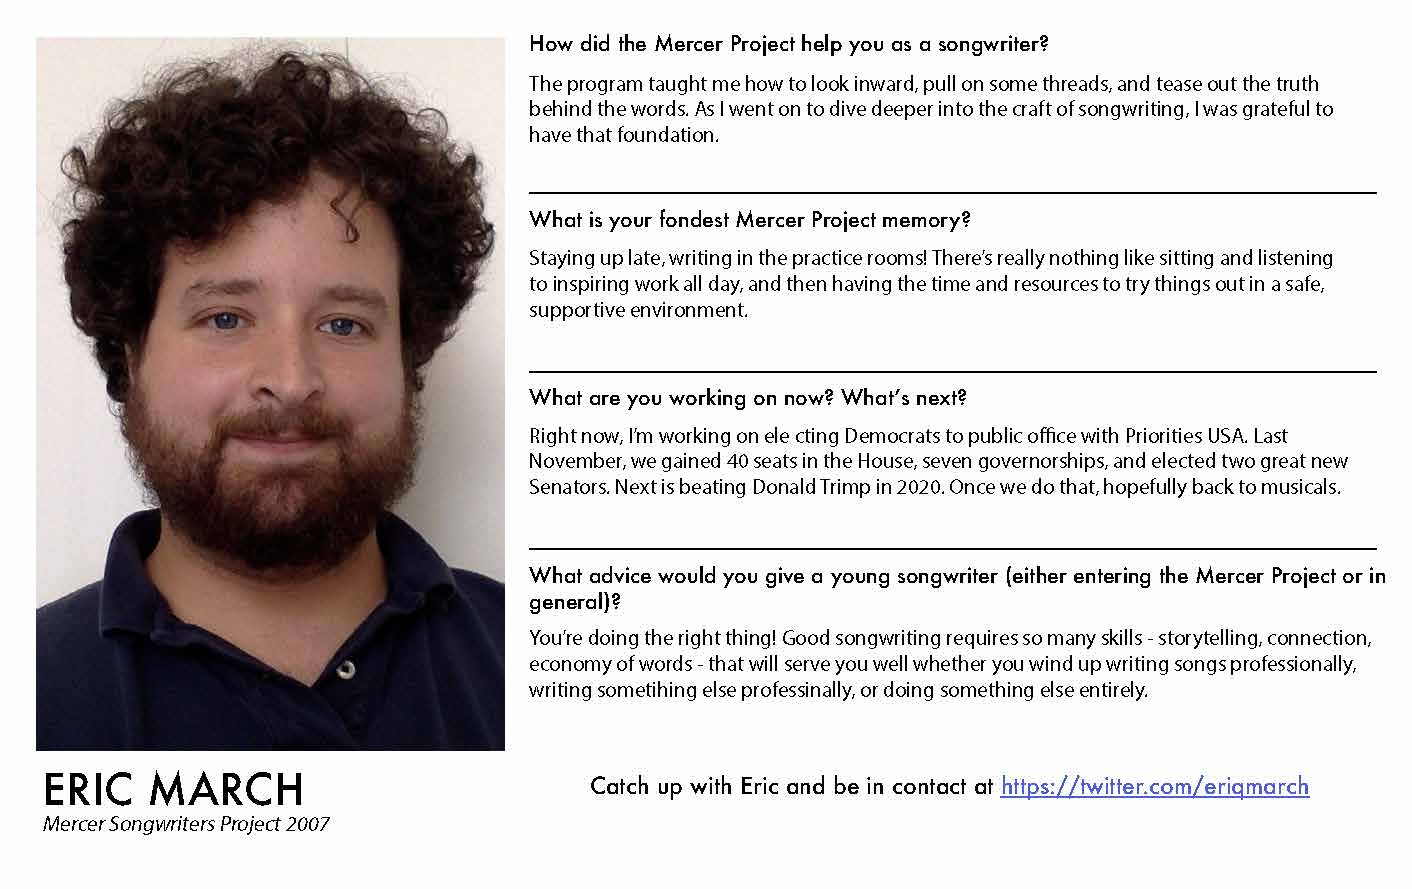 Eric March - Mercer Alumni Survey 2019